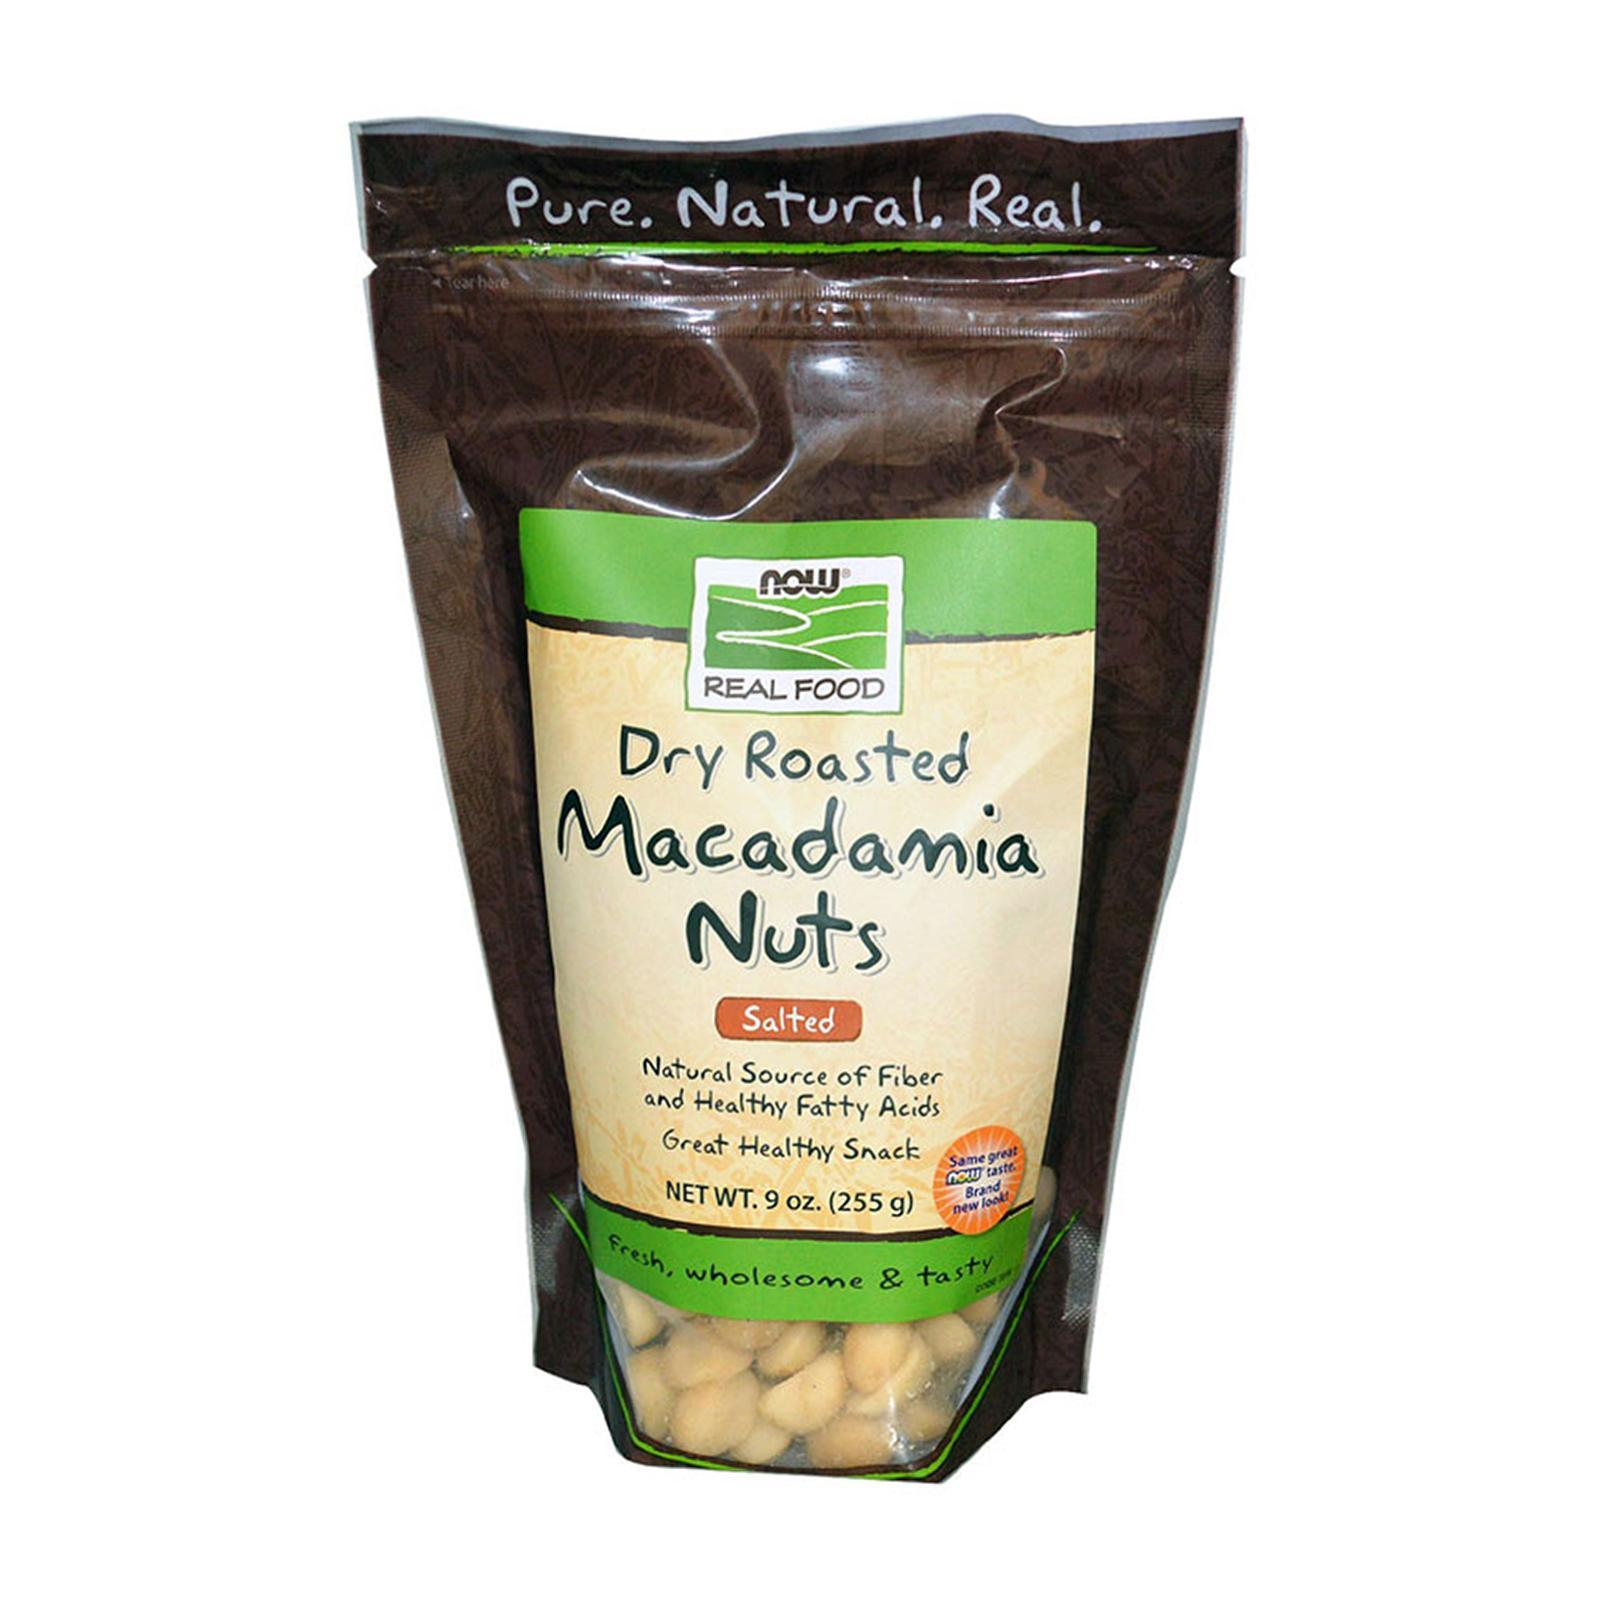 Now Foods Real Food Macadamia Nuts Dry Roasted Salted 9 Oz (255 G)